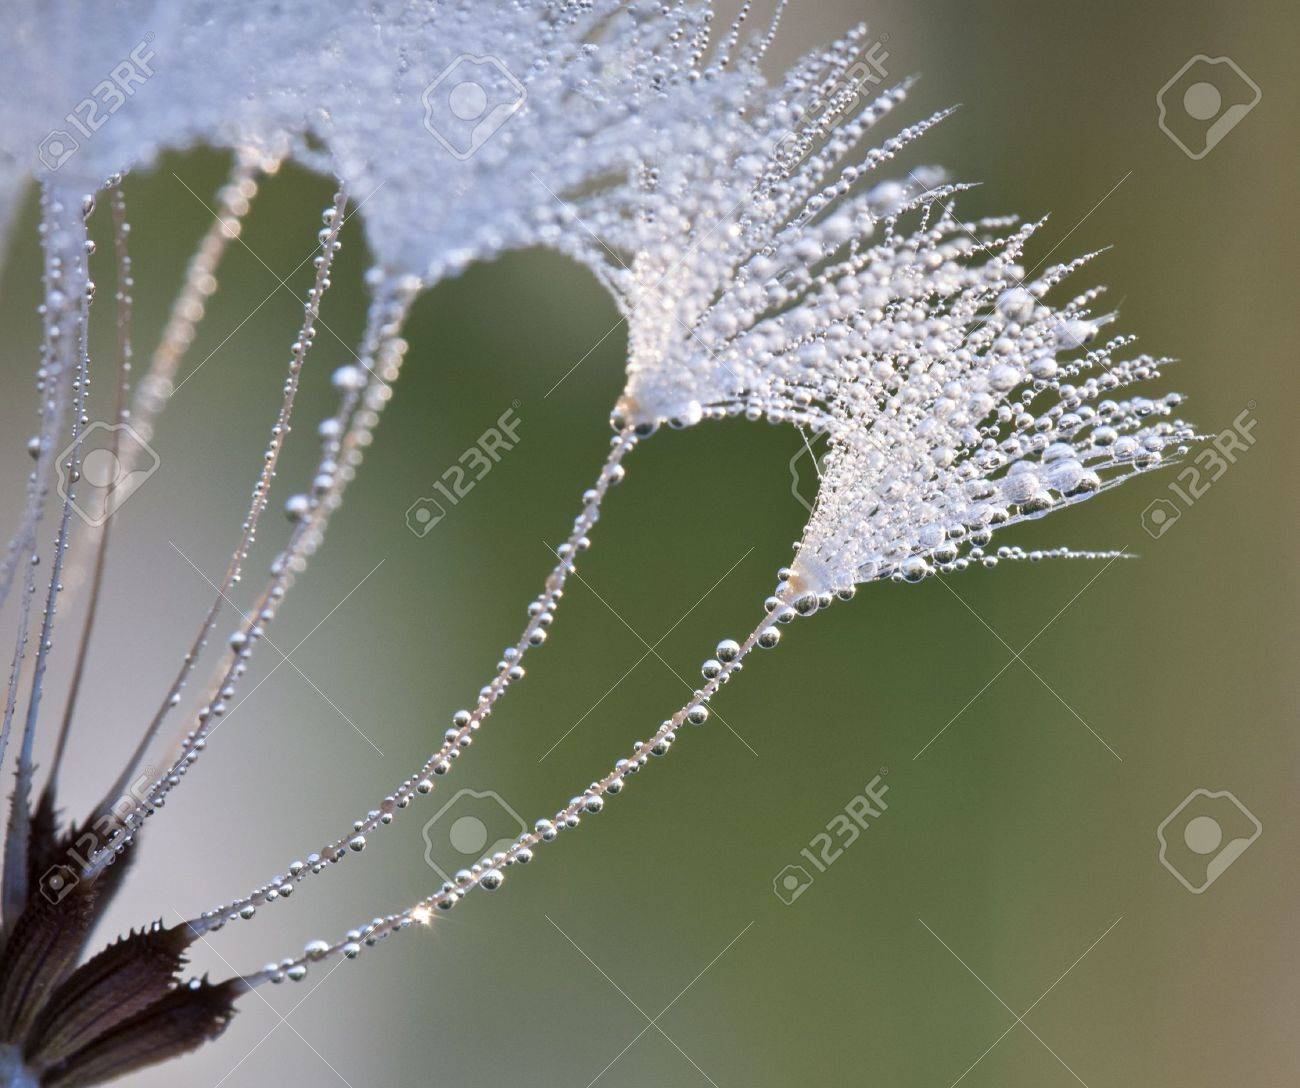 Dew drops on a grass in the morning - 10400258